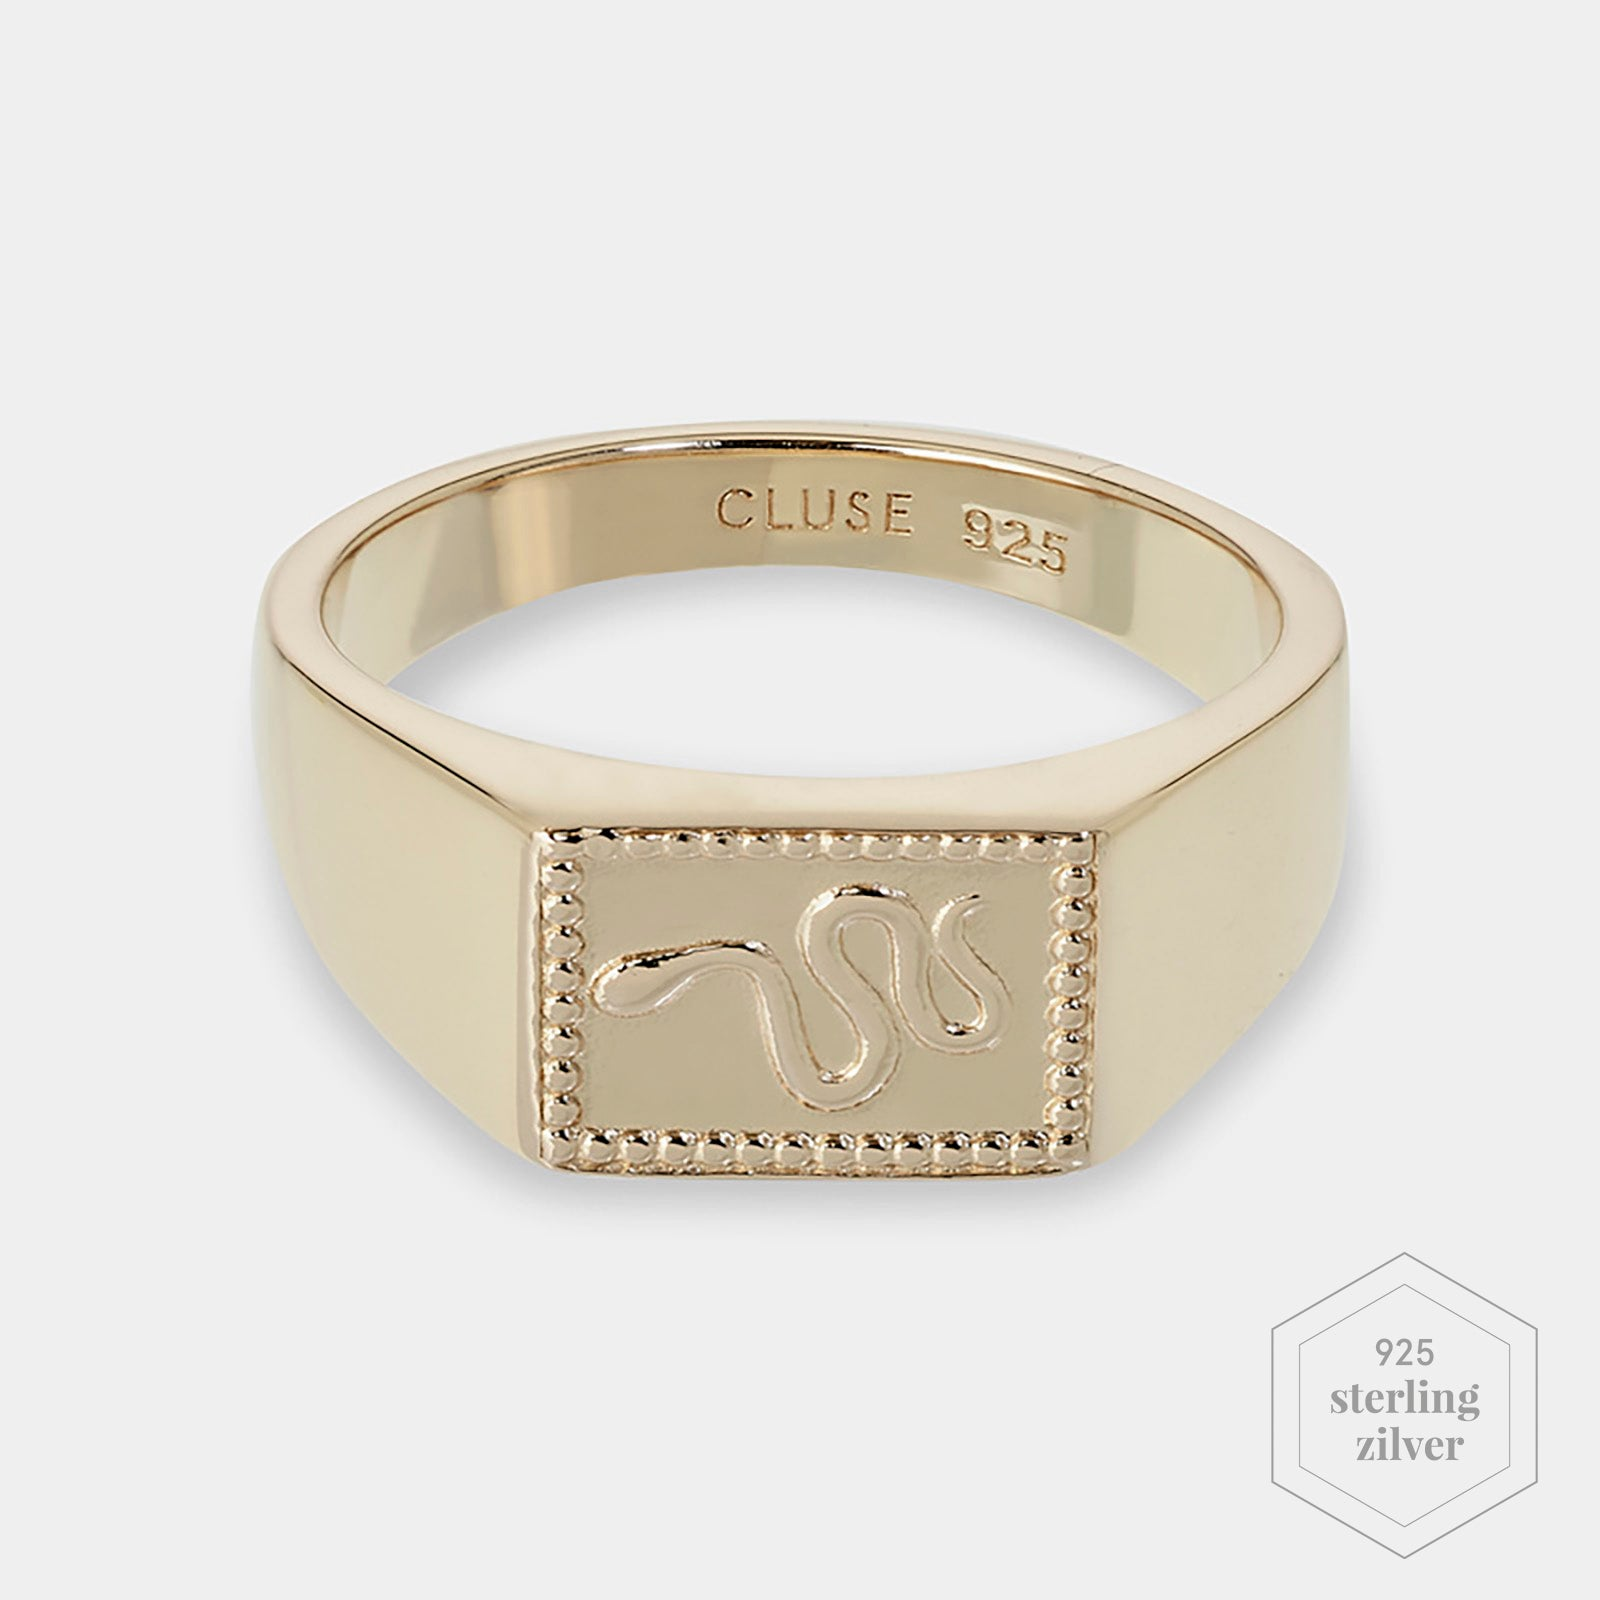 CLUSE Force Tropicale Gold Signet Rectangular Ring 52 CLJ41012-52 - ring maat 52